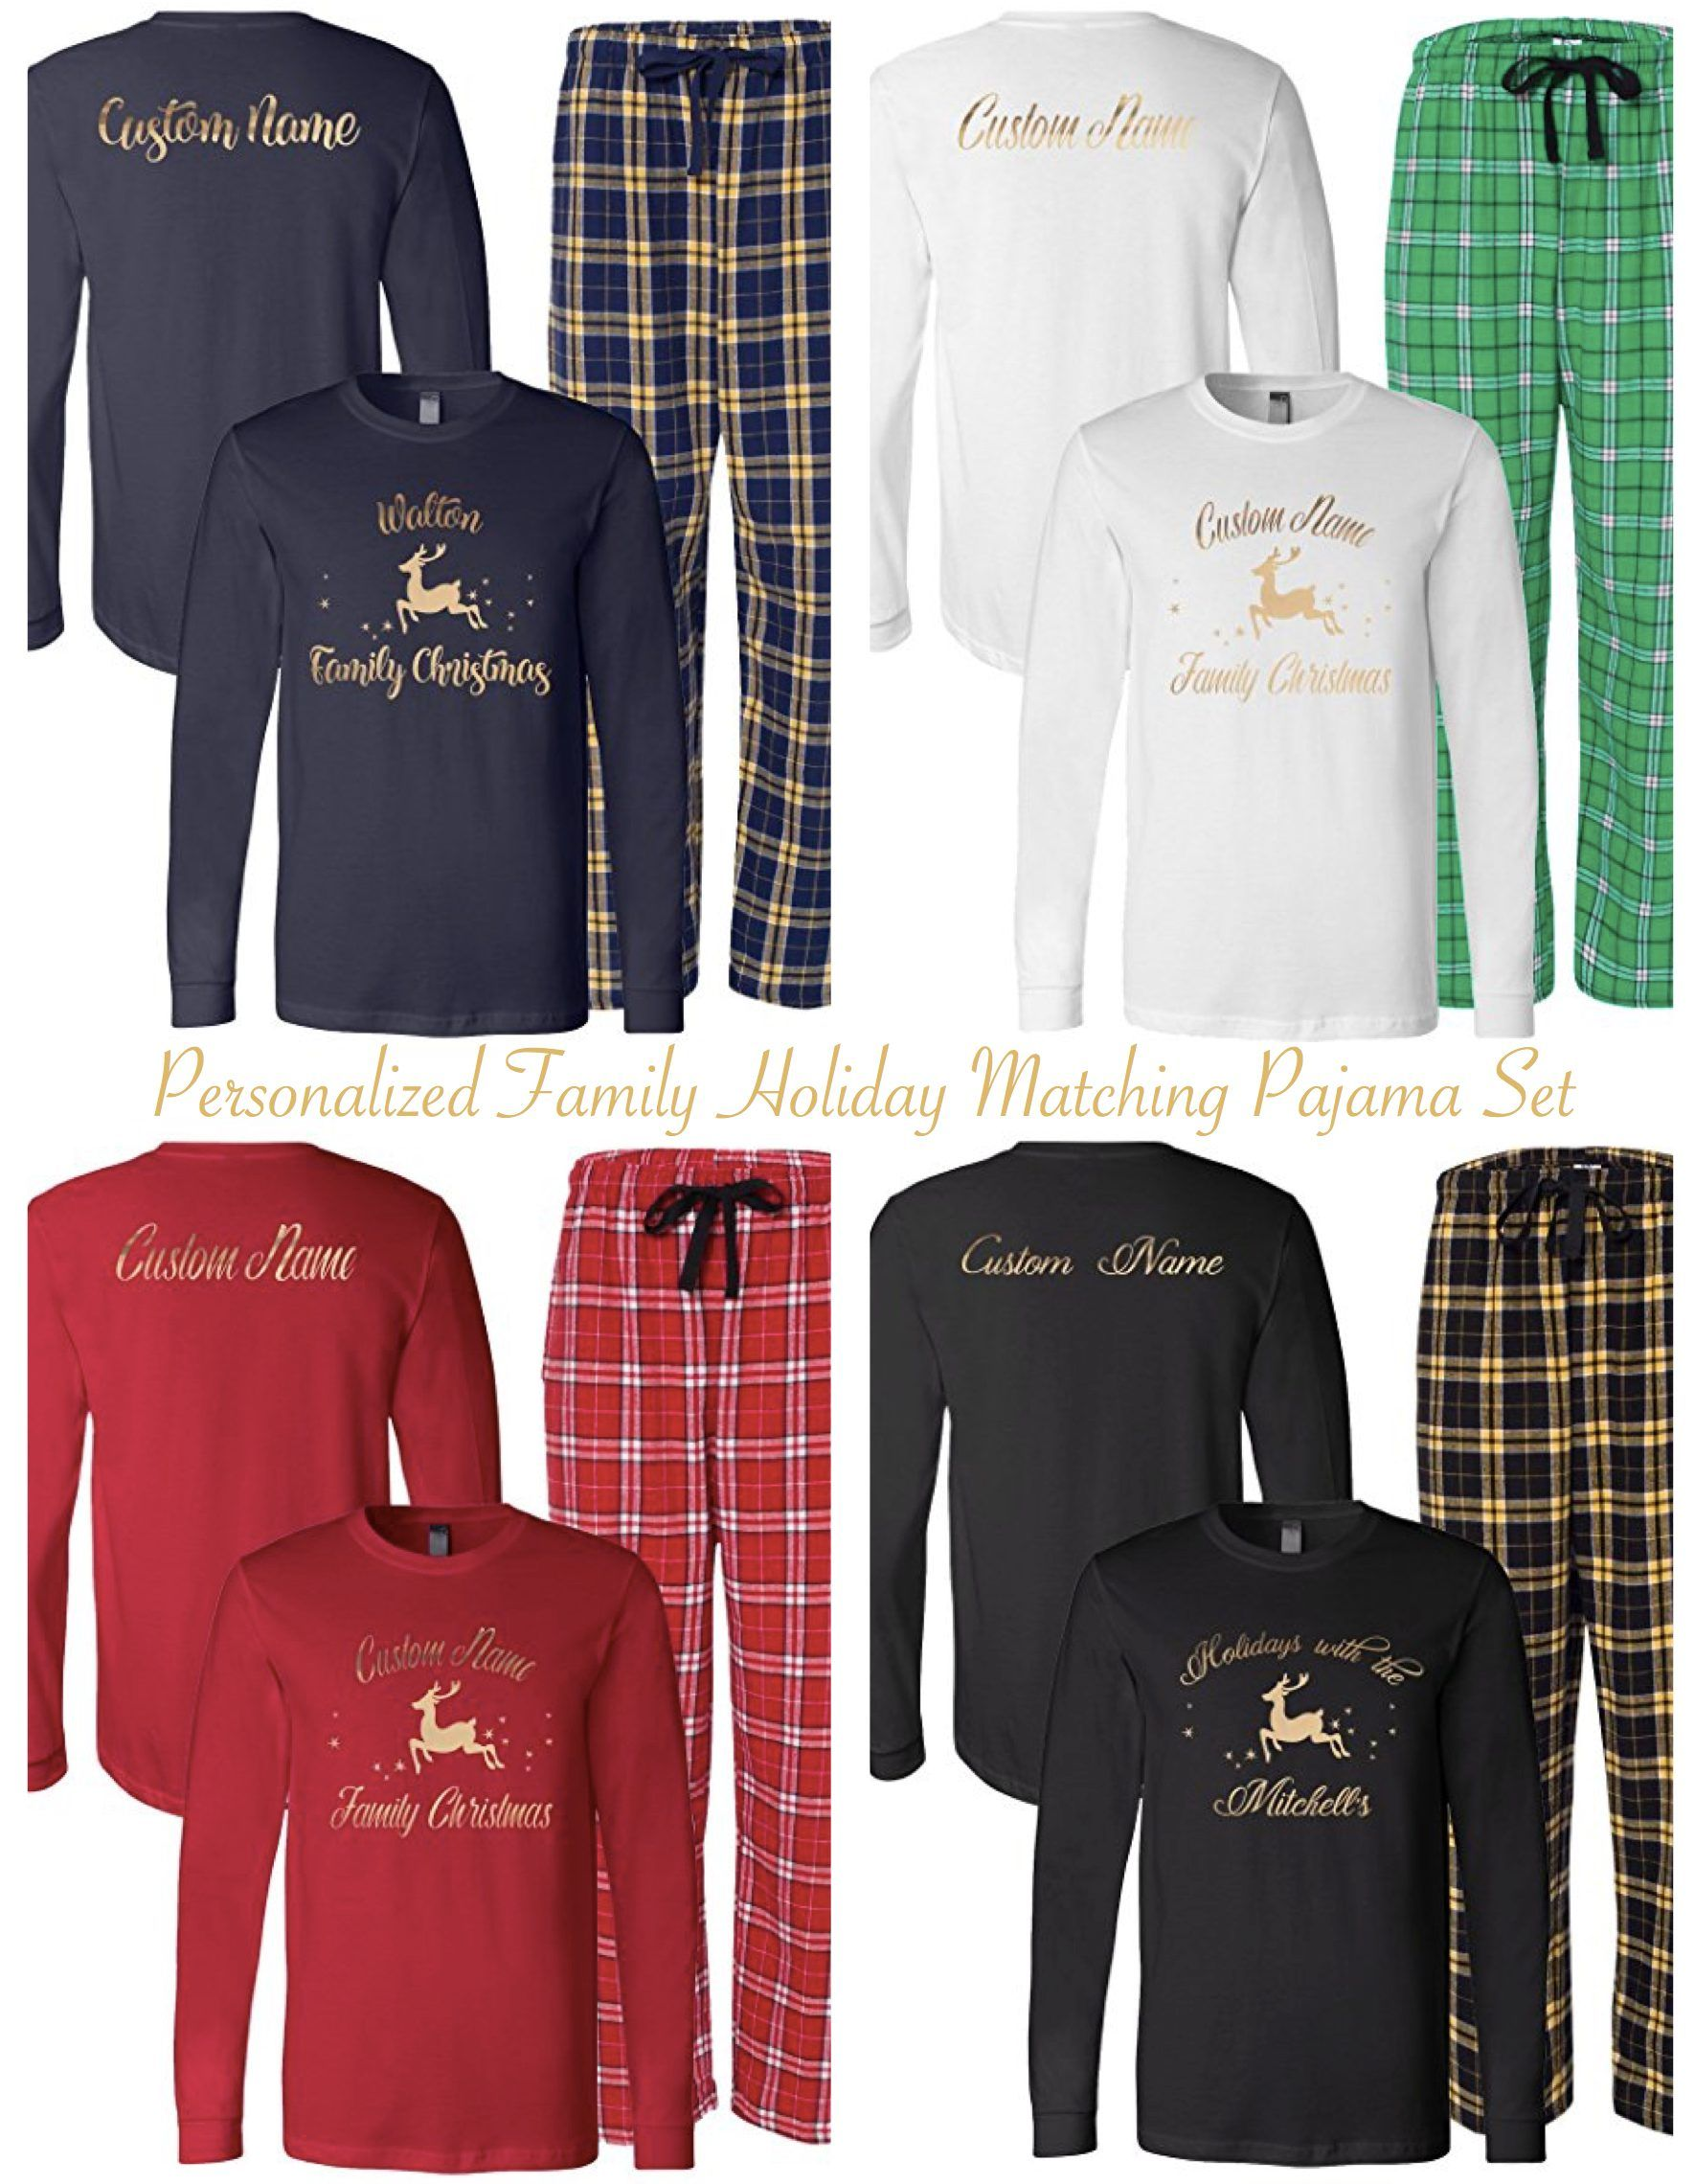 0c119c3c9a Personalized Family Matching Holiday Pajama Sets